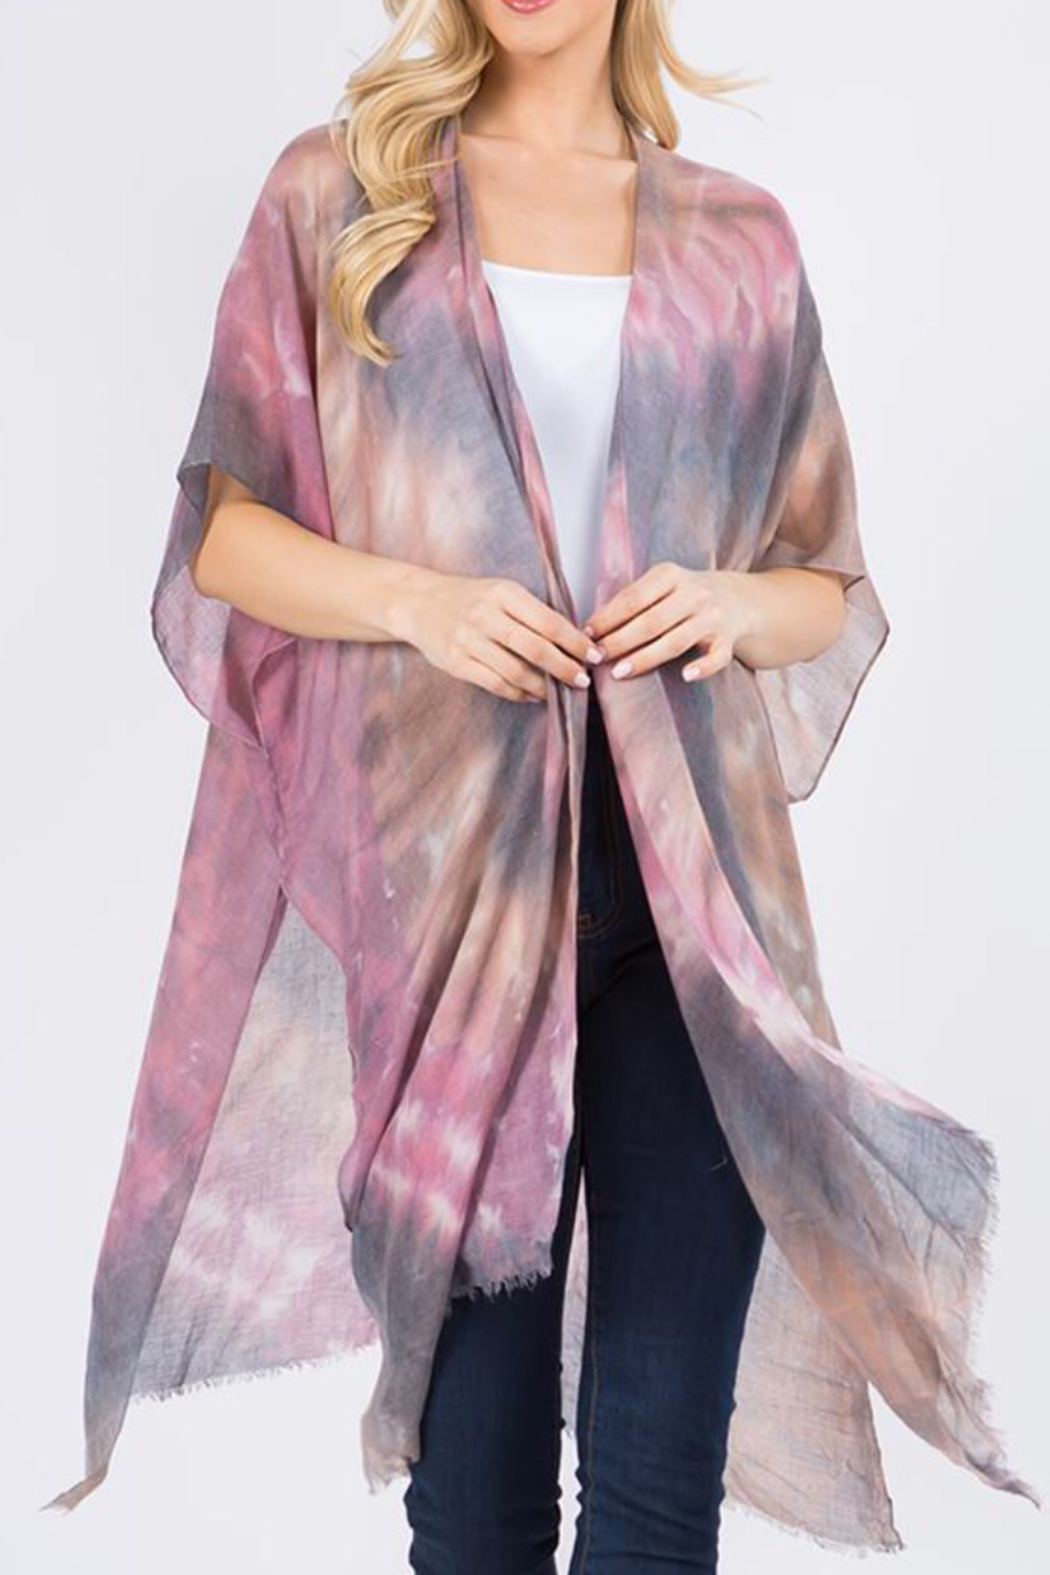 L.I.B. New York Tie-Dye Cover Up/Kimono - Front Cropped Image